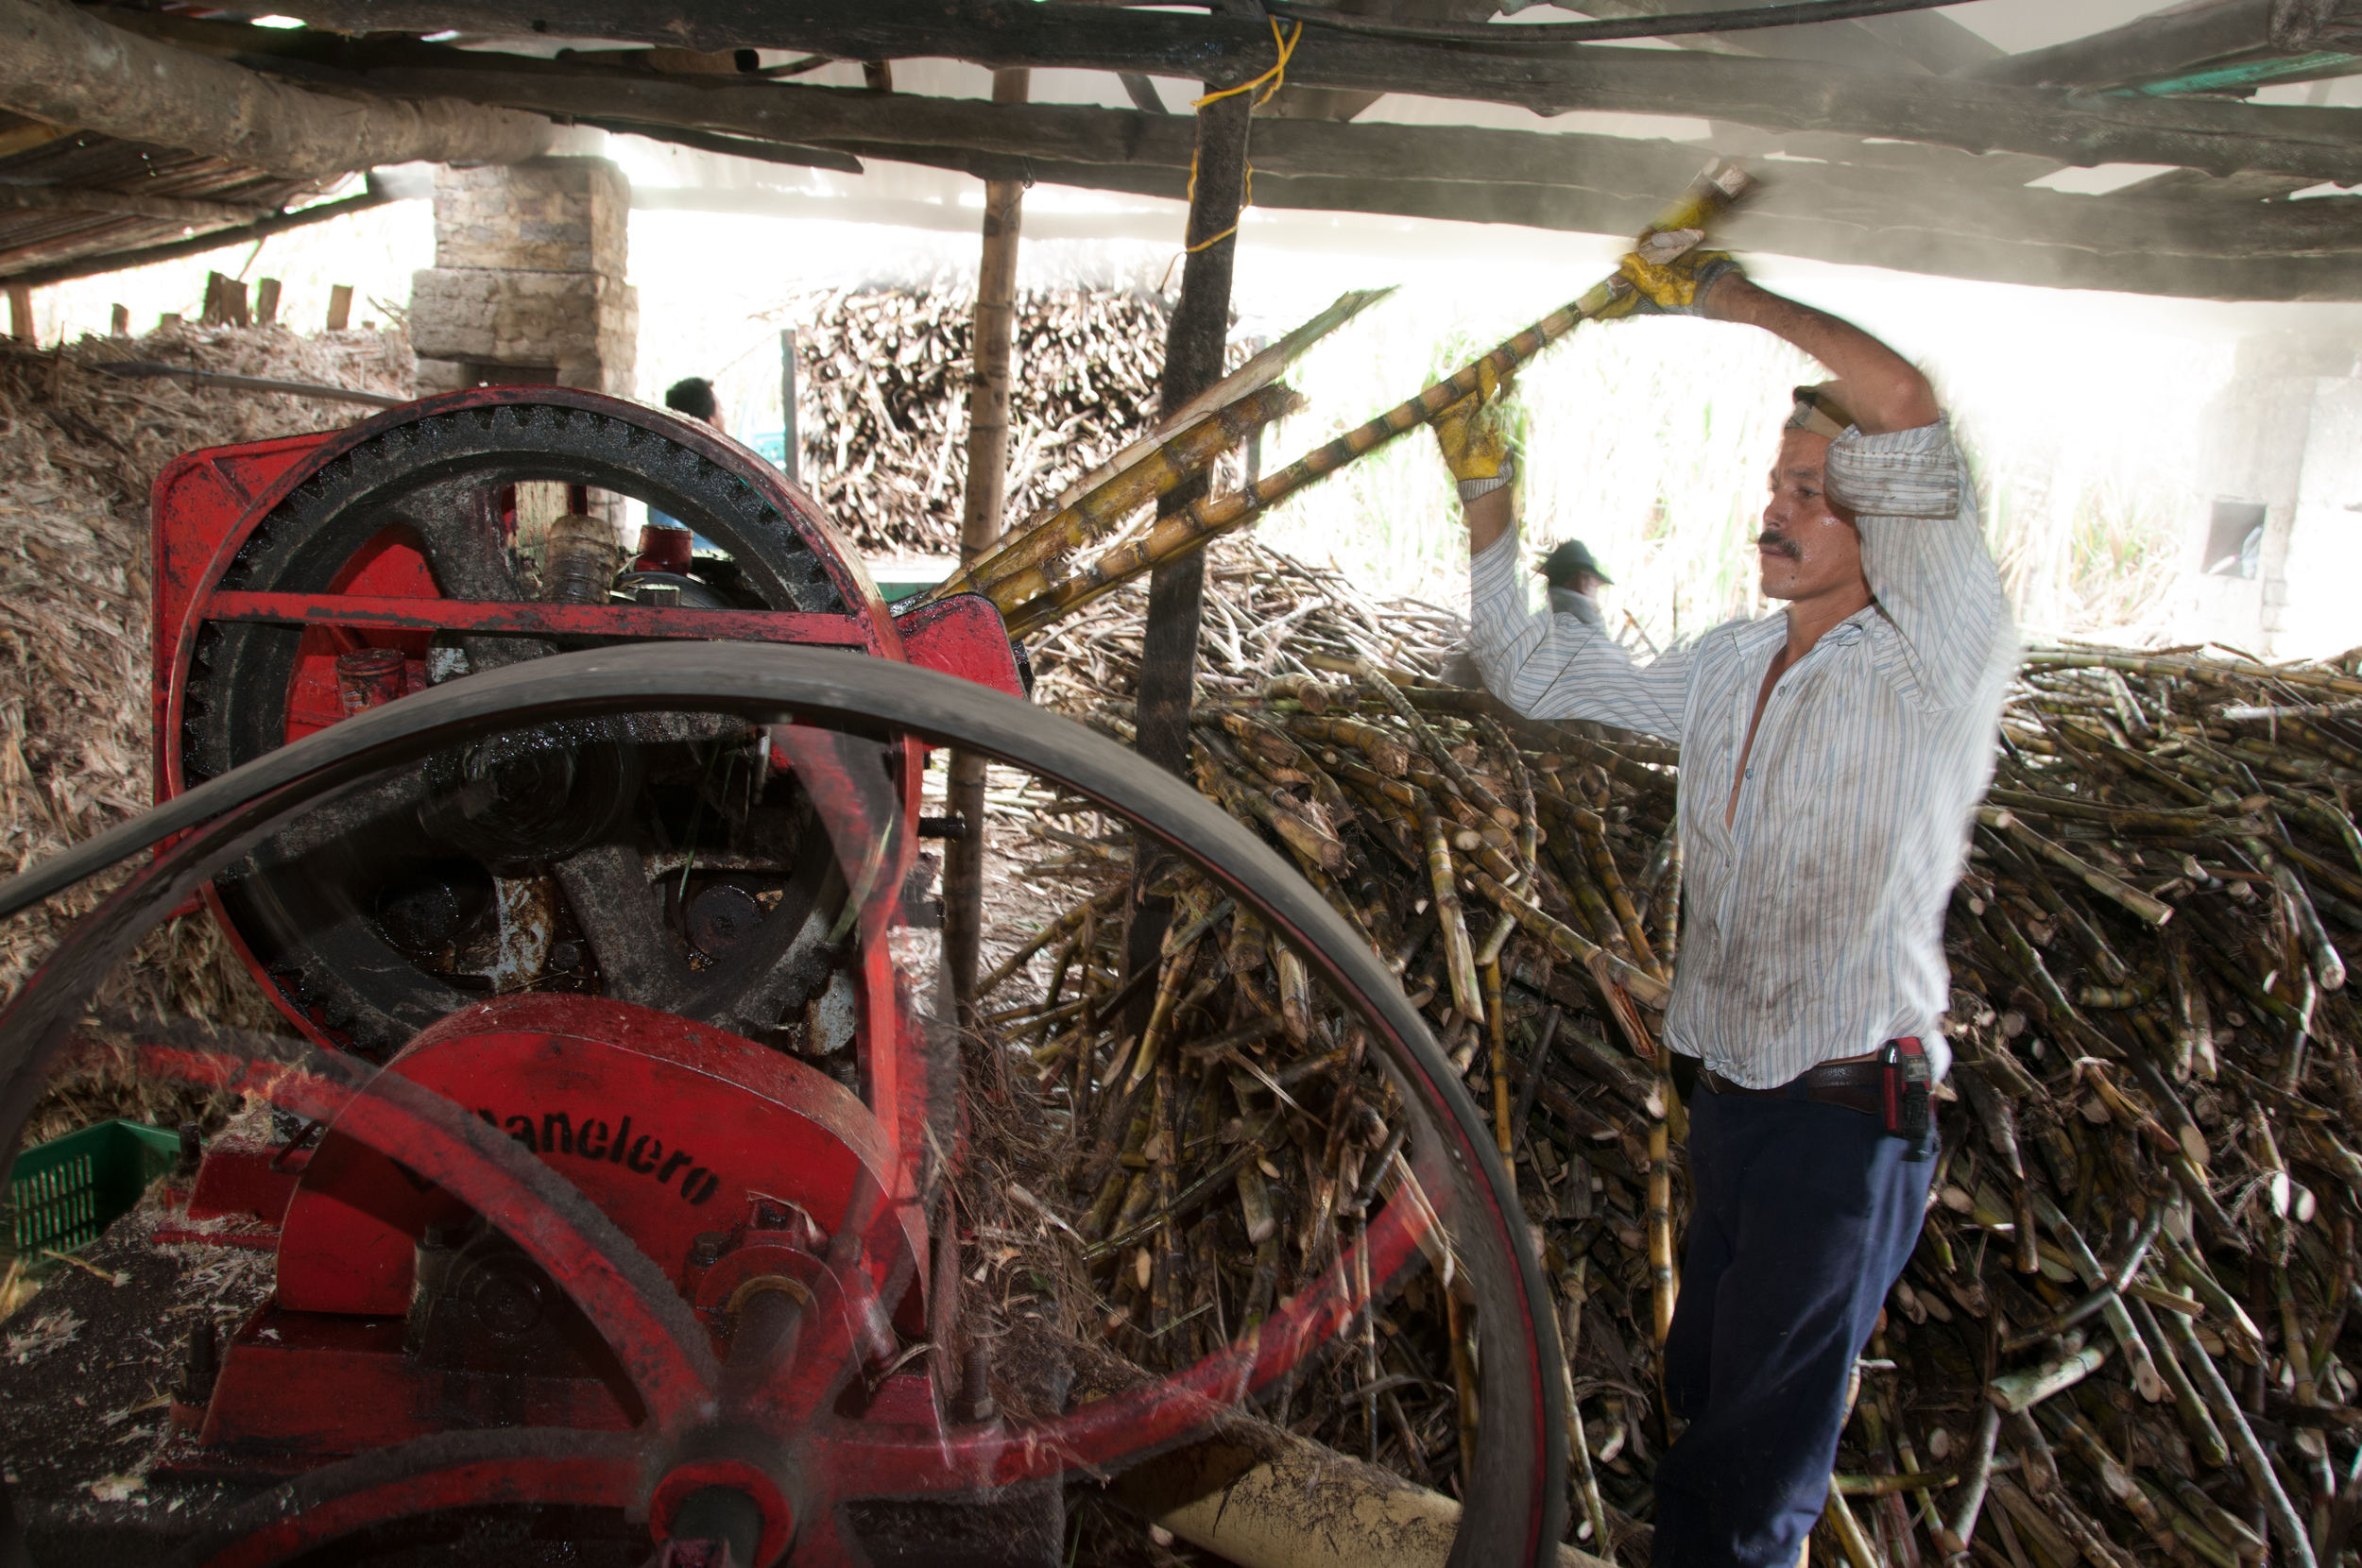 extracting sugar cane